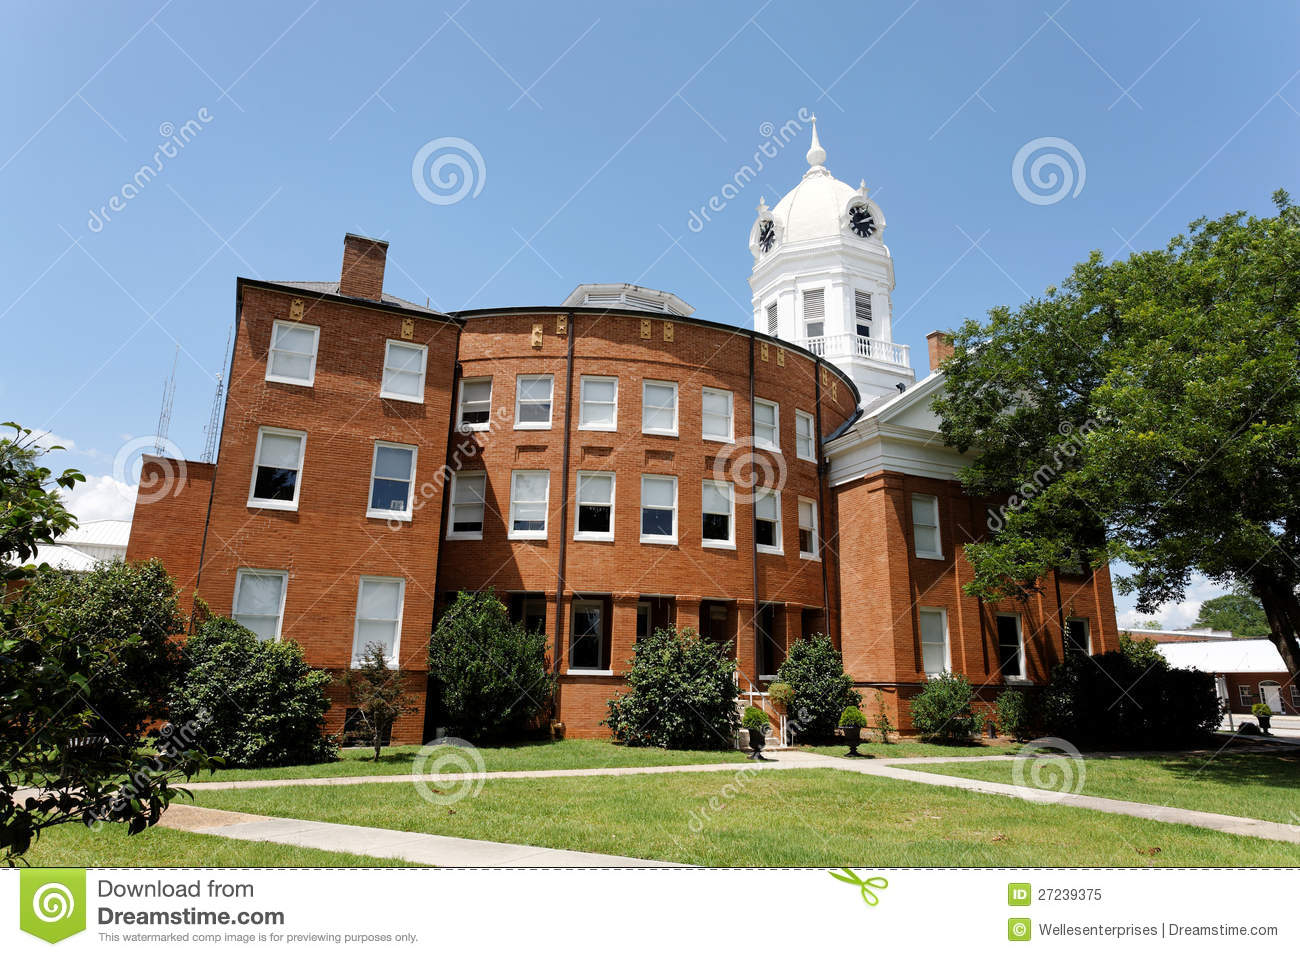 Old Monroe County Courthouse Stock Image - Image of